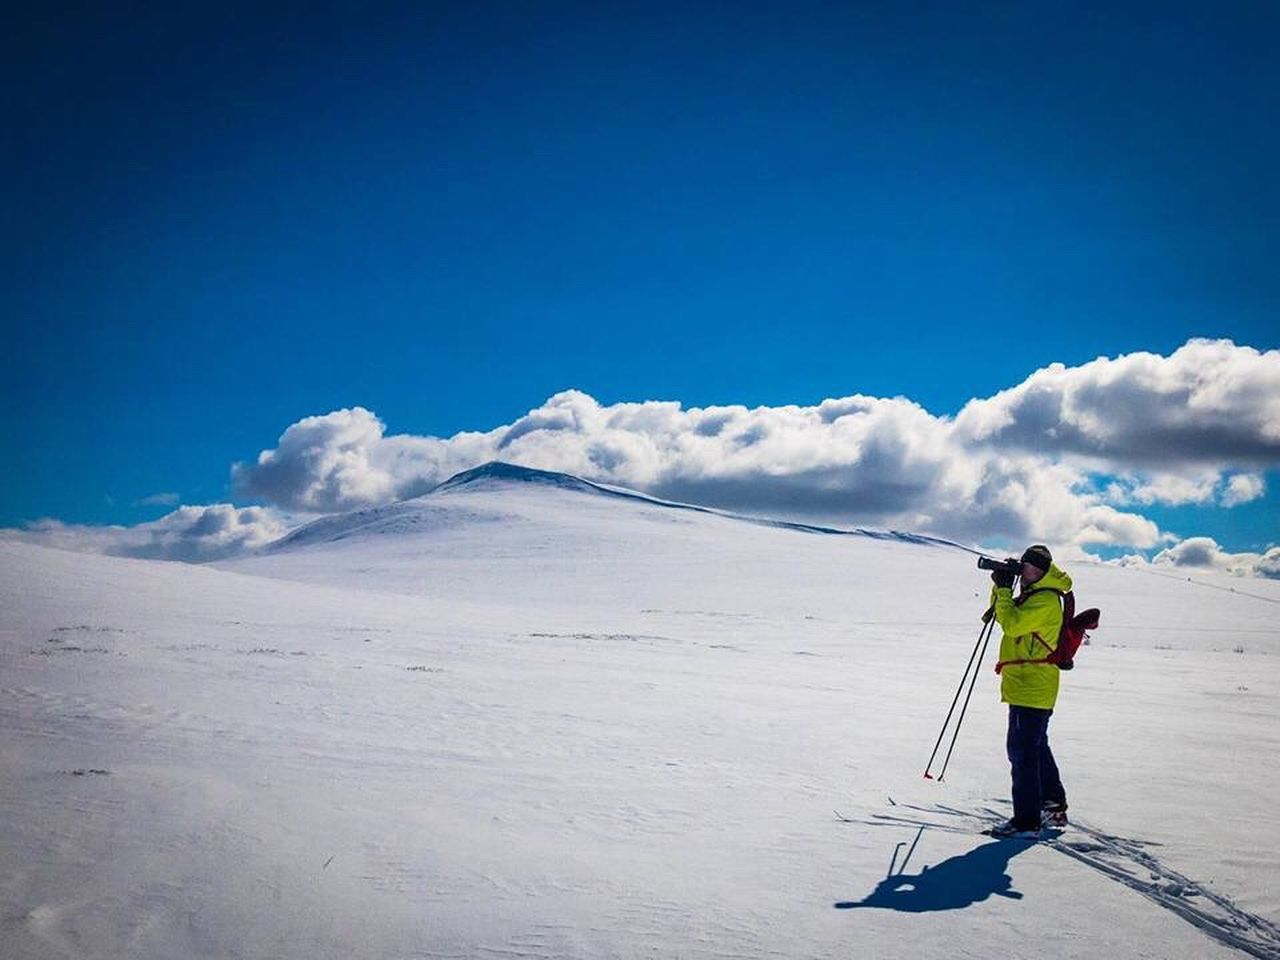 MAN SKIING ON SNOW COVERED LANDSCAPE AGAINST SKY